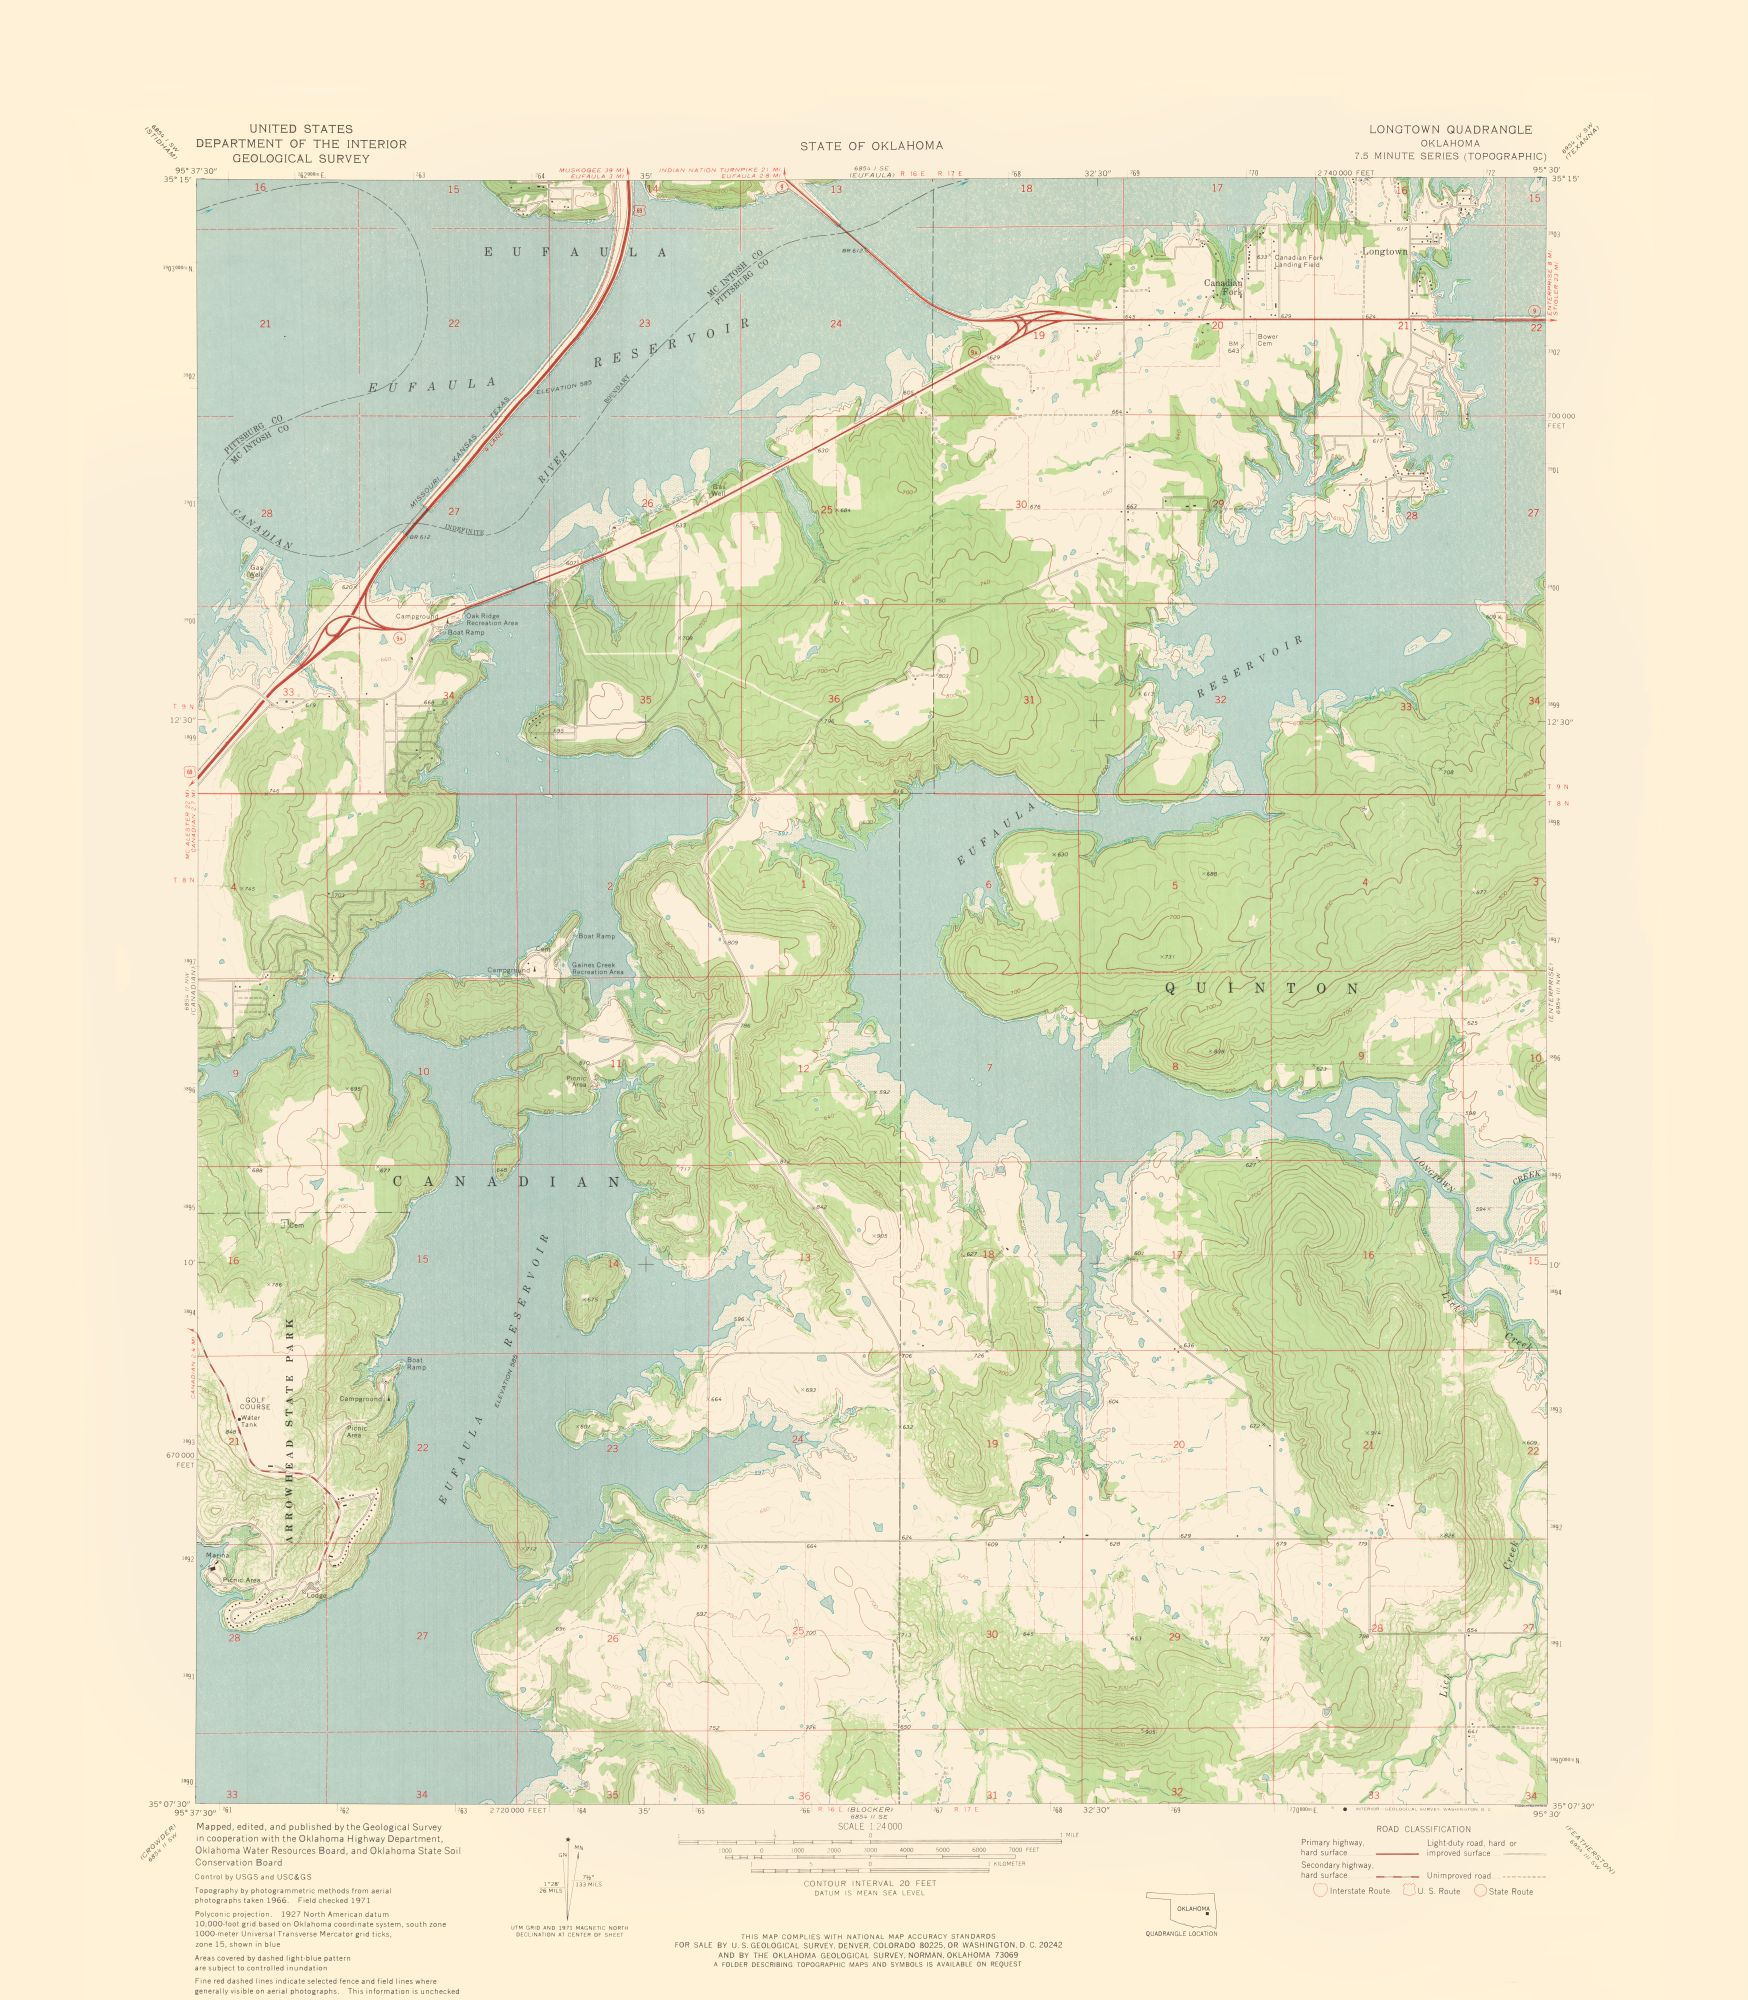 Topographic Map - Longtown Oklahoma Quad - USGS 1971 - 23 x 26.31 ...